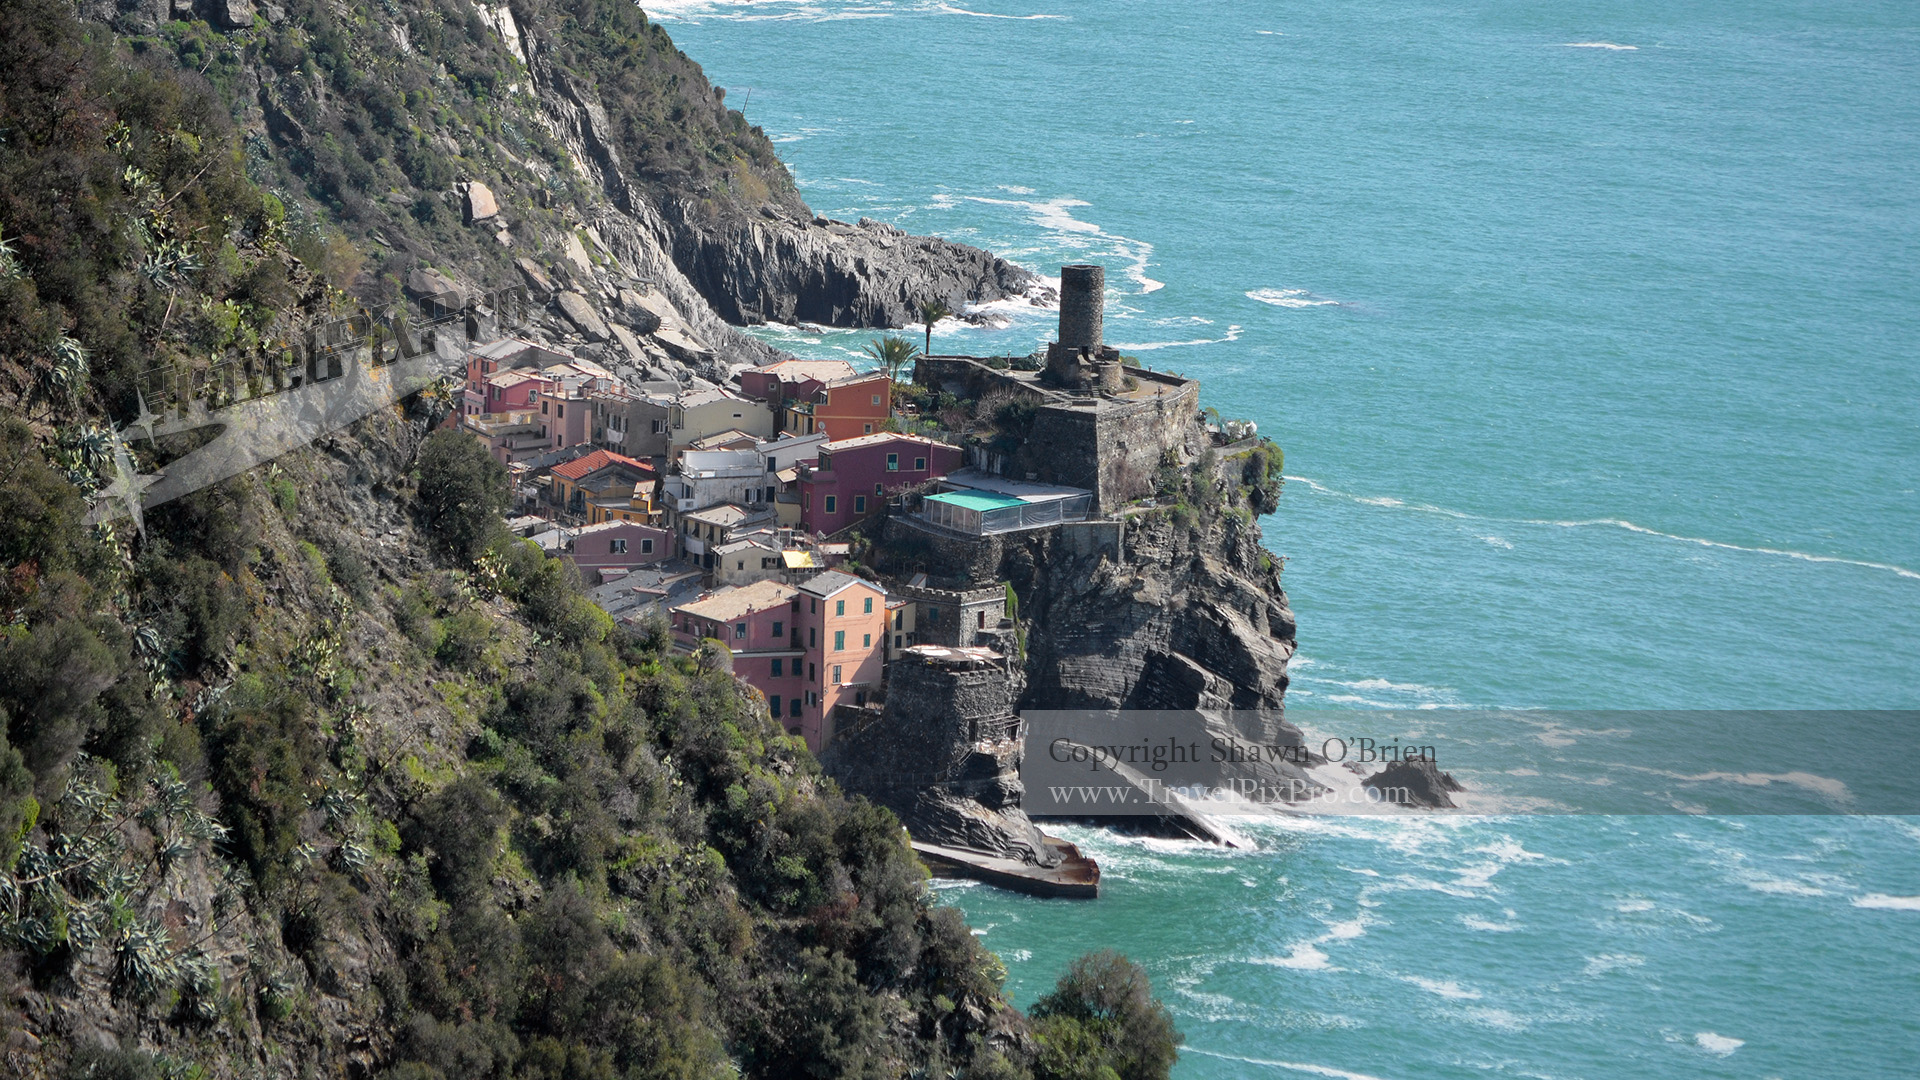 Above Vernazza 5Terre Hiking Trail